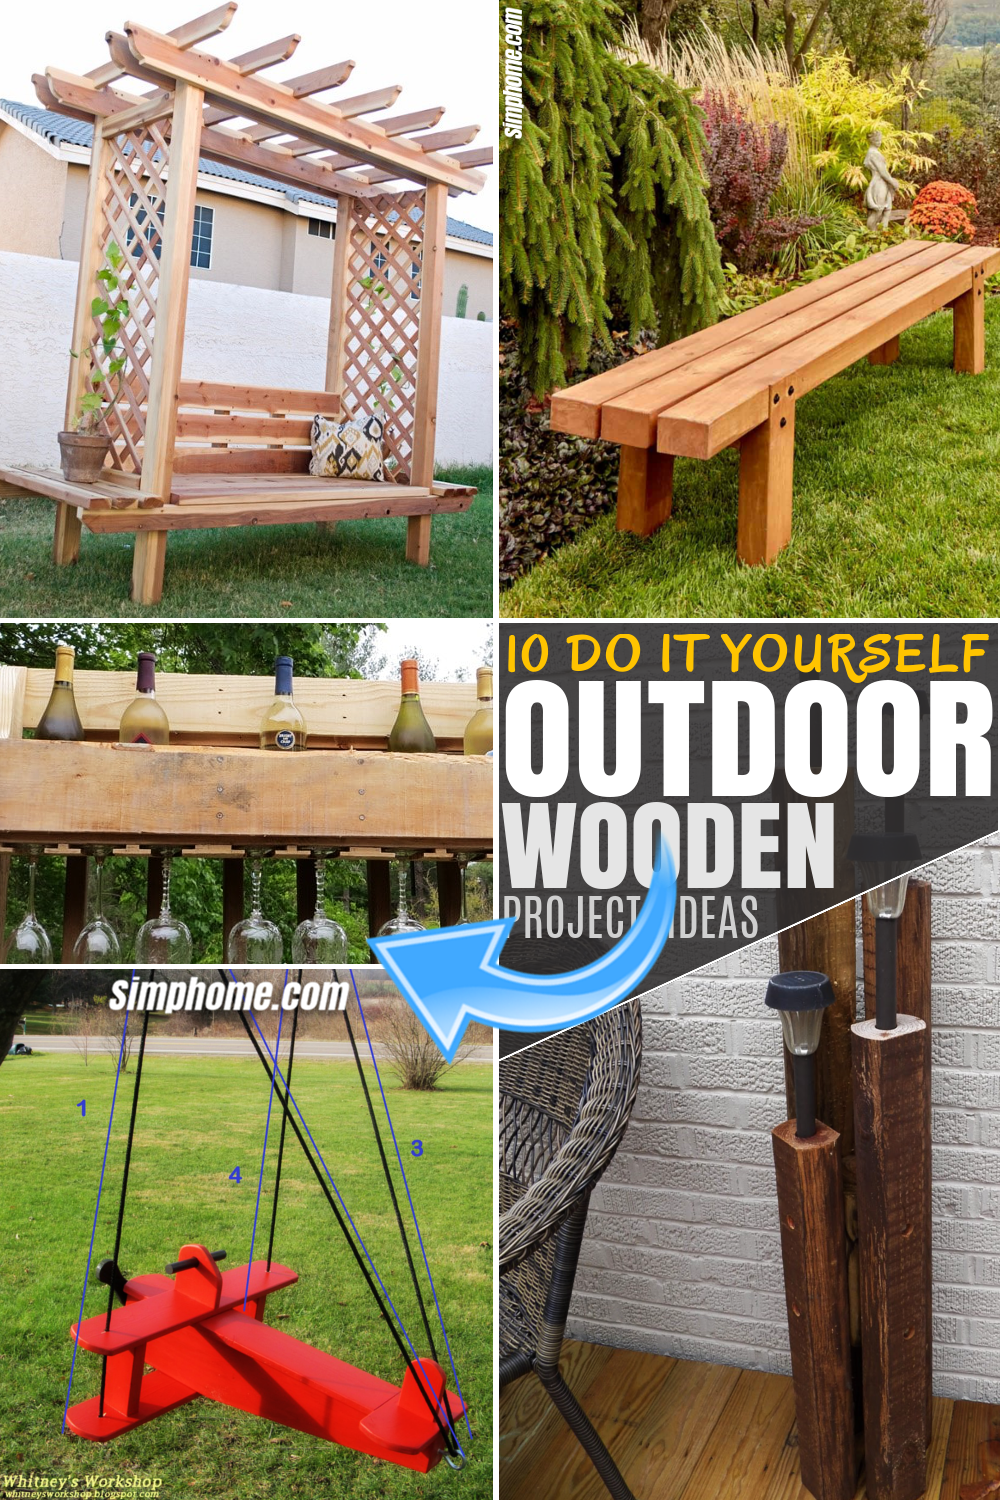 SIMPHOME.COM 10 DIY Outdoor Wood Projects Pinterest Image